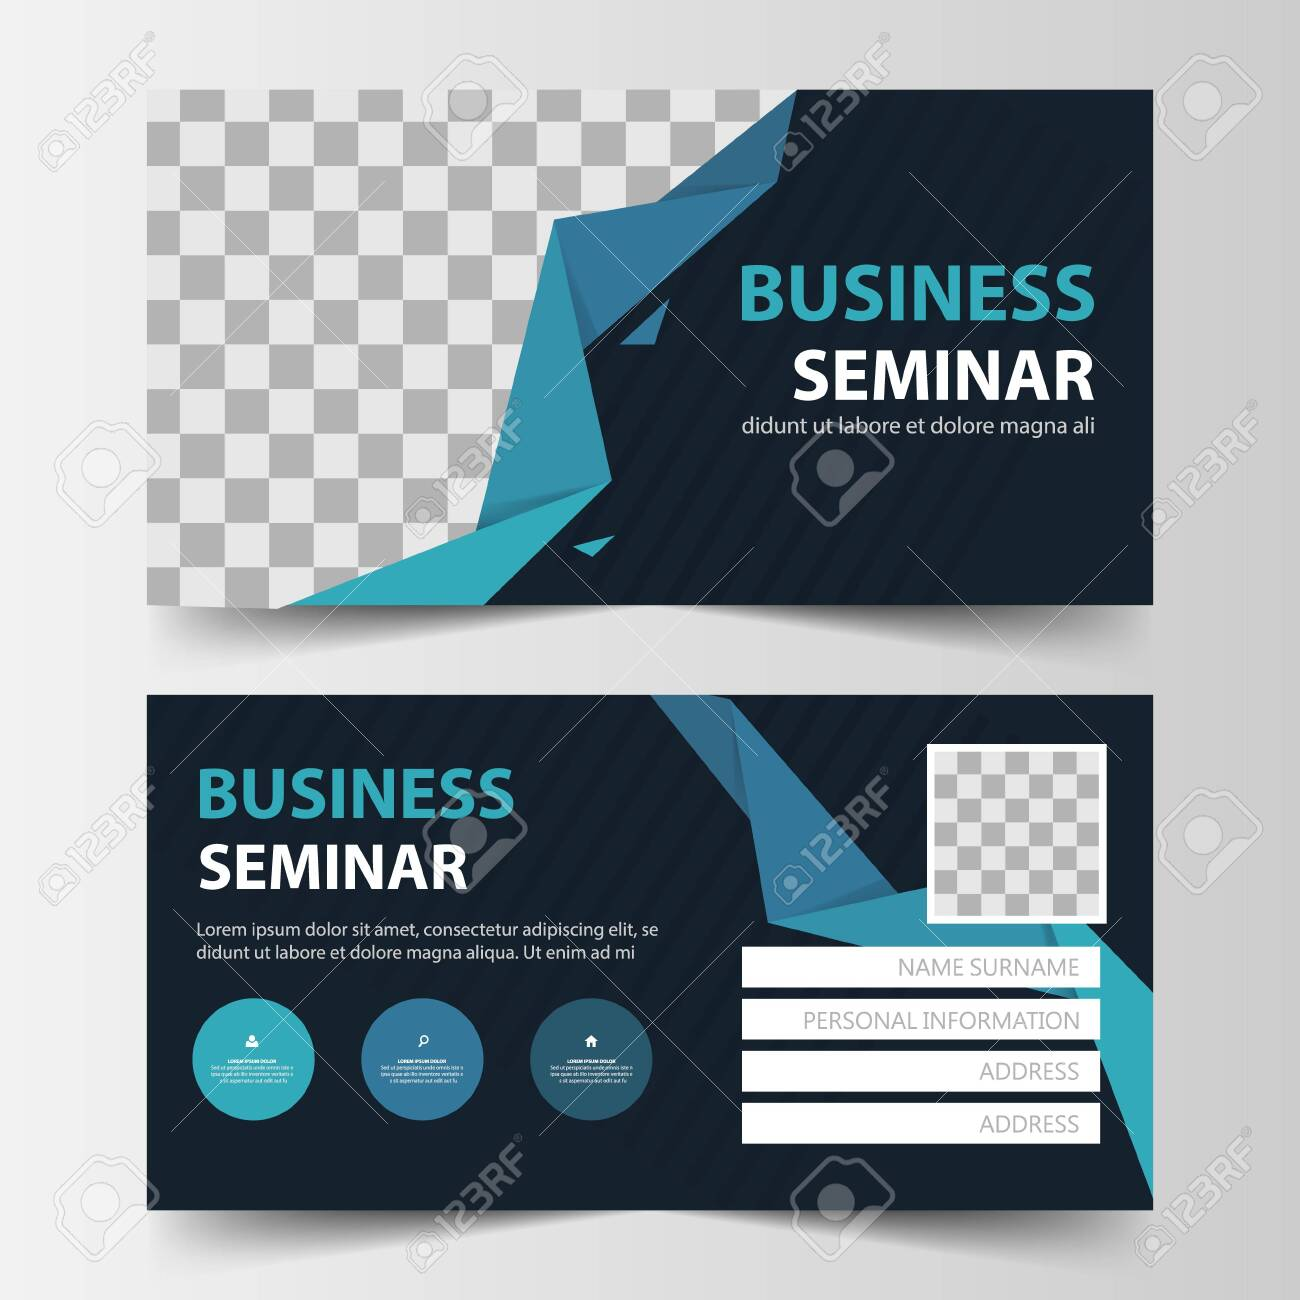 Member Card Corporate Business Card Name Card Template Horizontal Royalty Free Cliparts Vectors And Stock Illustration Image 132835750